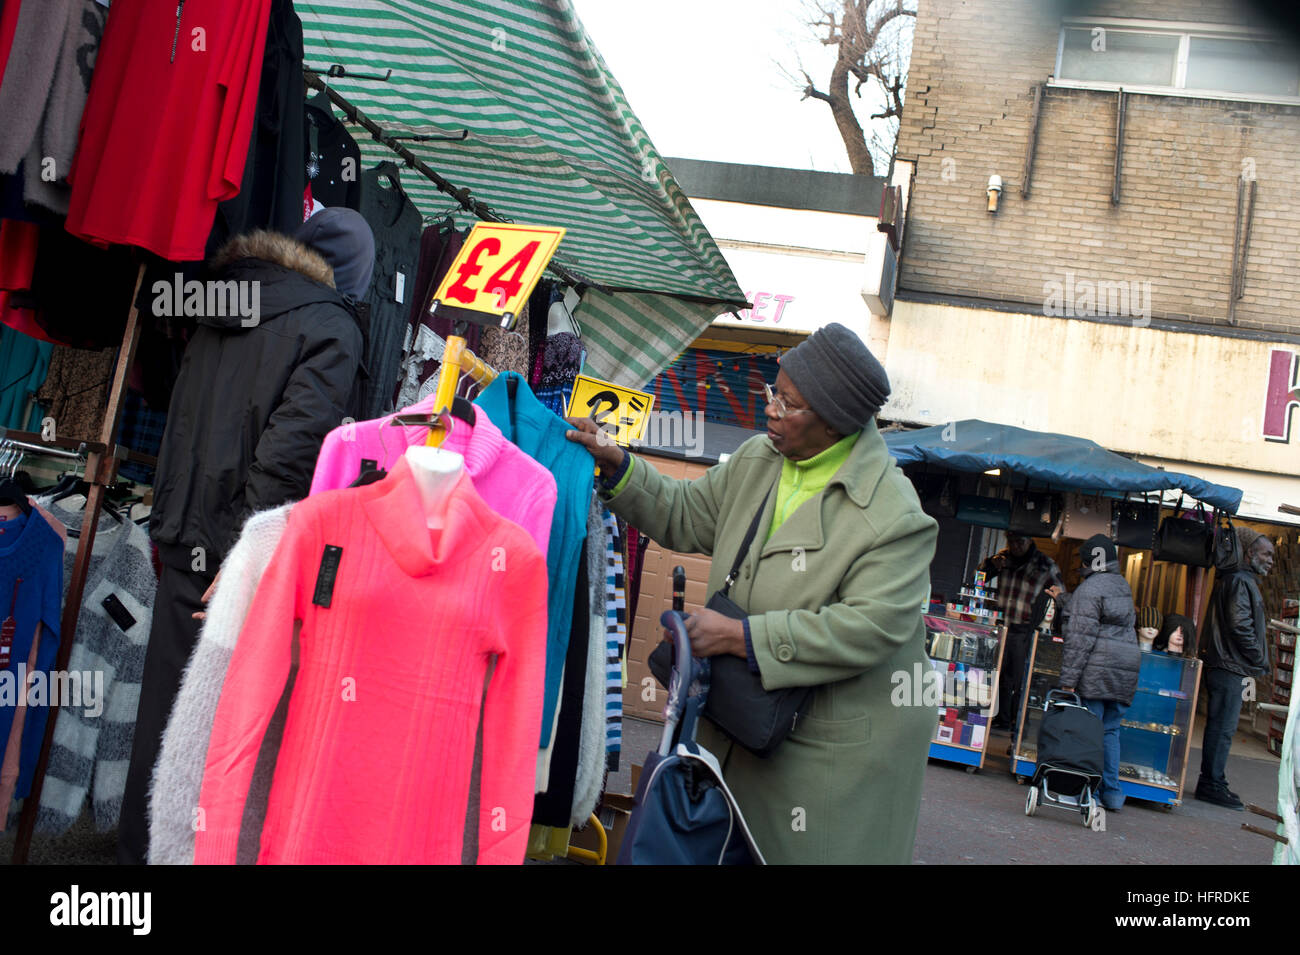 Hackney. Ridley Road market. An Afro Caribbean woman shopper examines the bargain clothes rack - Stock Image